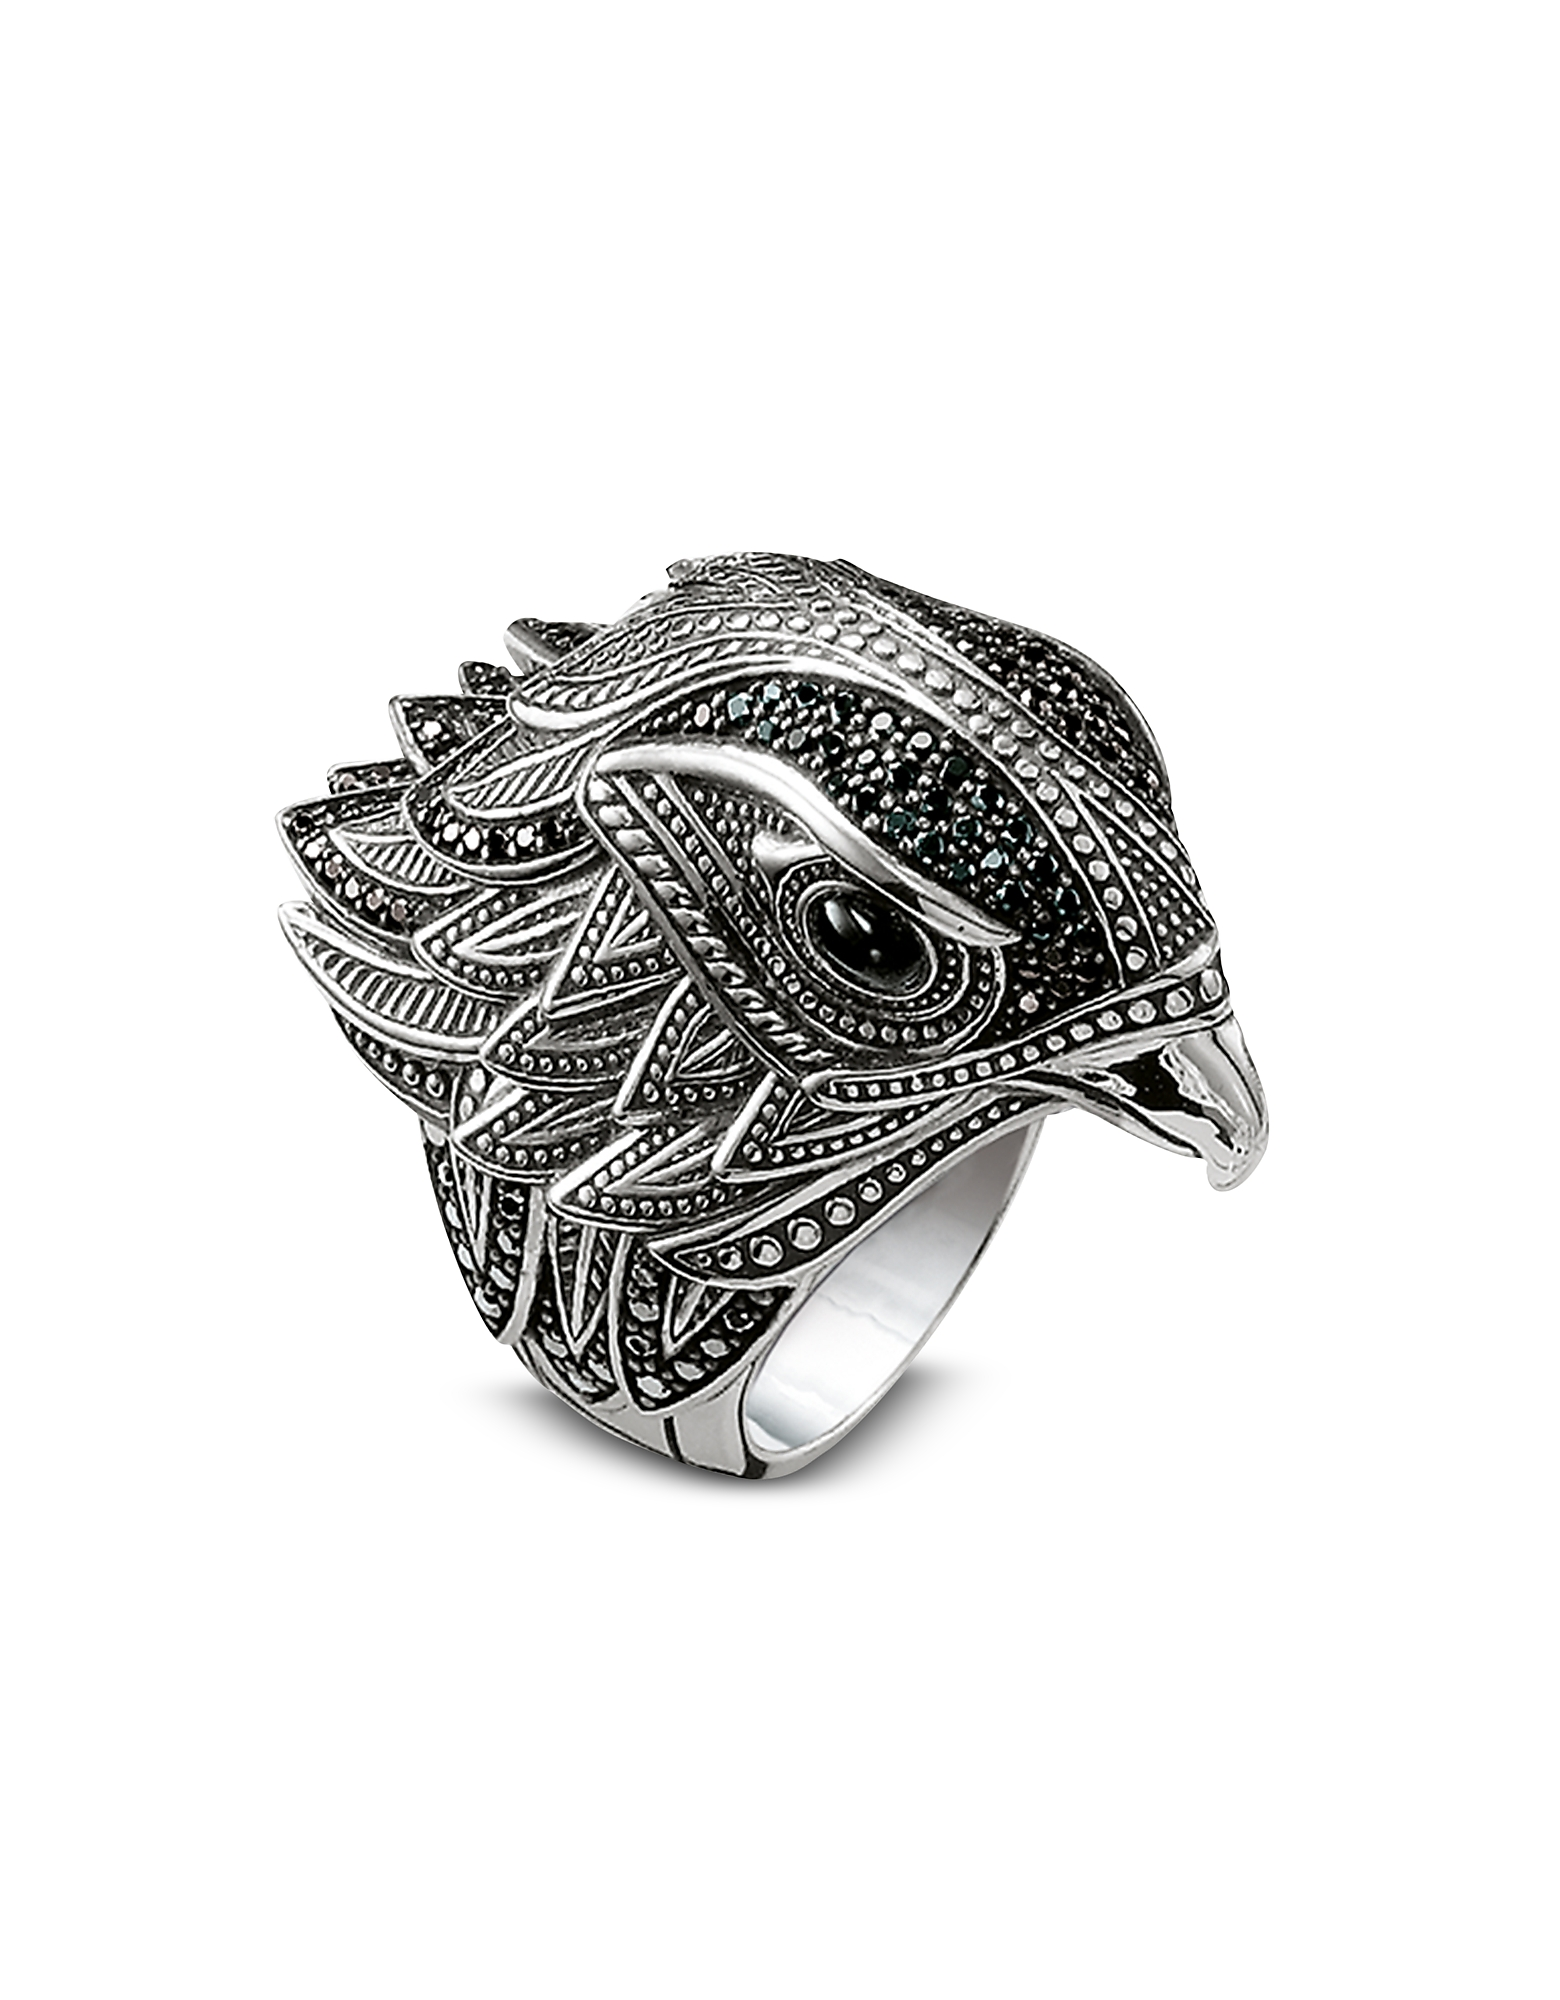 Blackened Sterling Silver Ring W/Black Cubic Zirconia